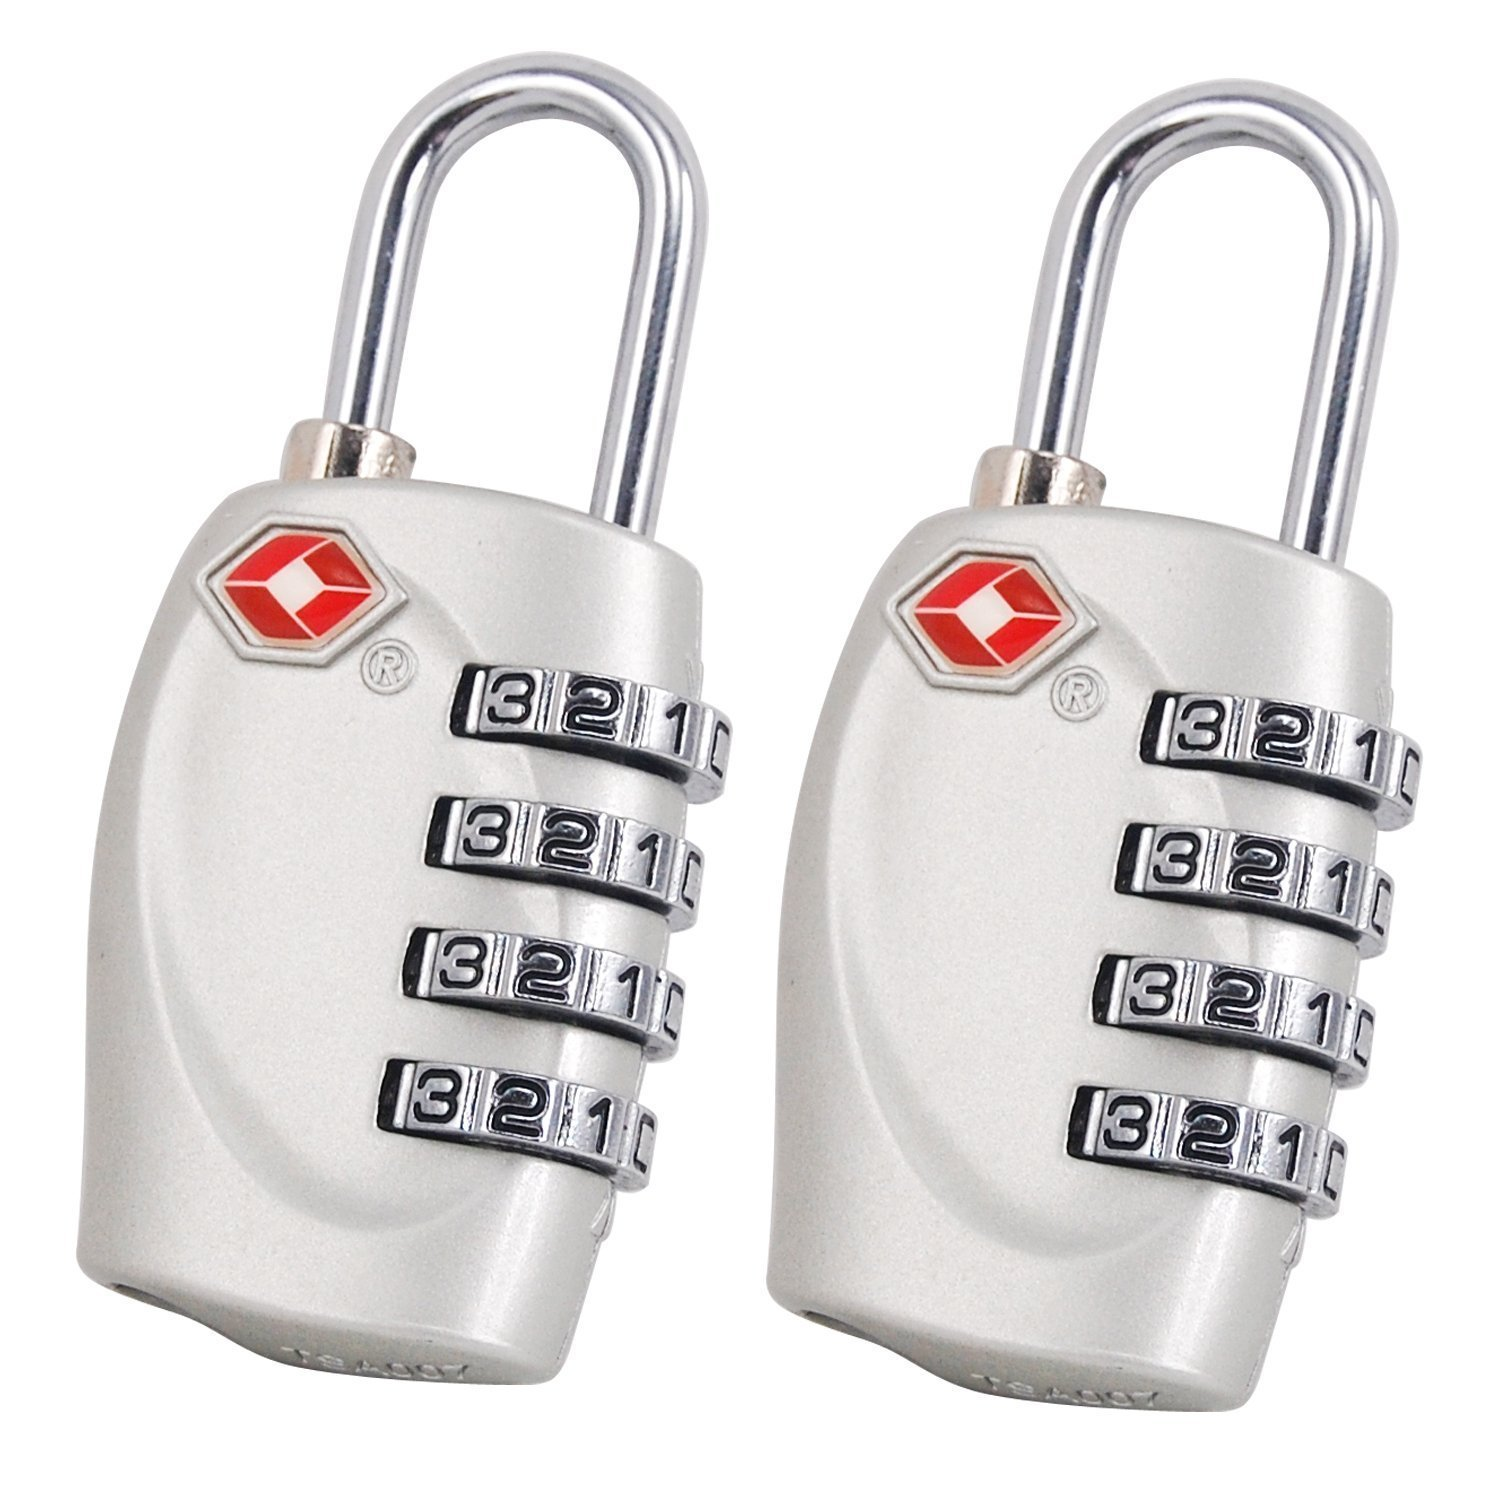 2 x TSA Security Padlock - 4-dial Combination Travel Suitcase Luggage Bag Code Lock (SILVER) - LIFETIME WARRANTY Travel Buddy